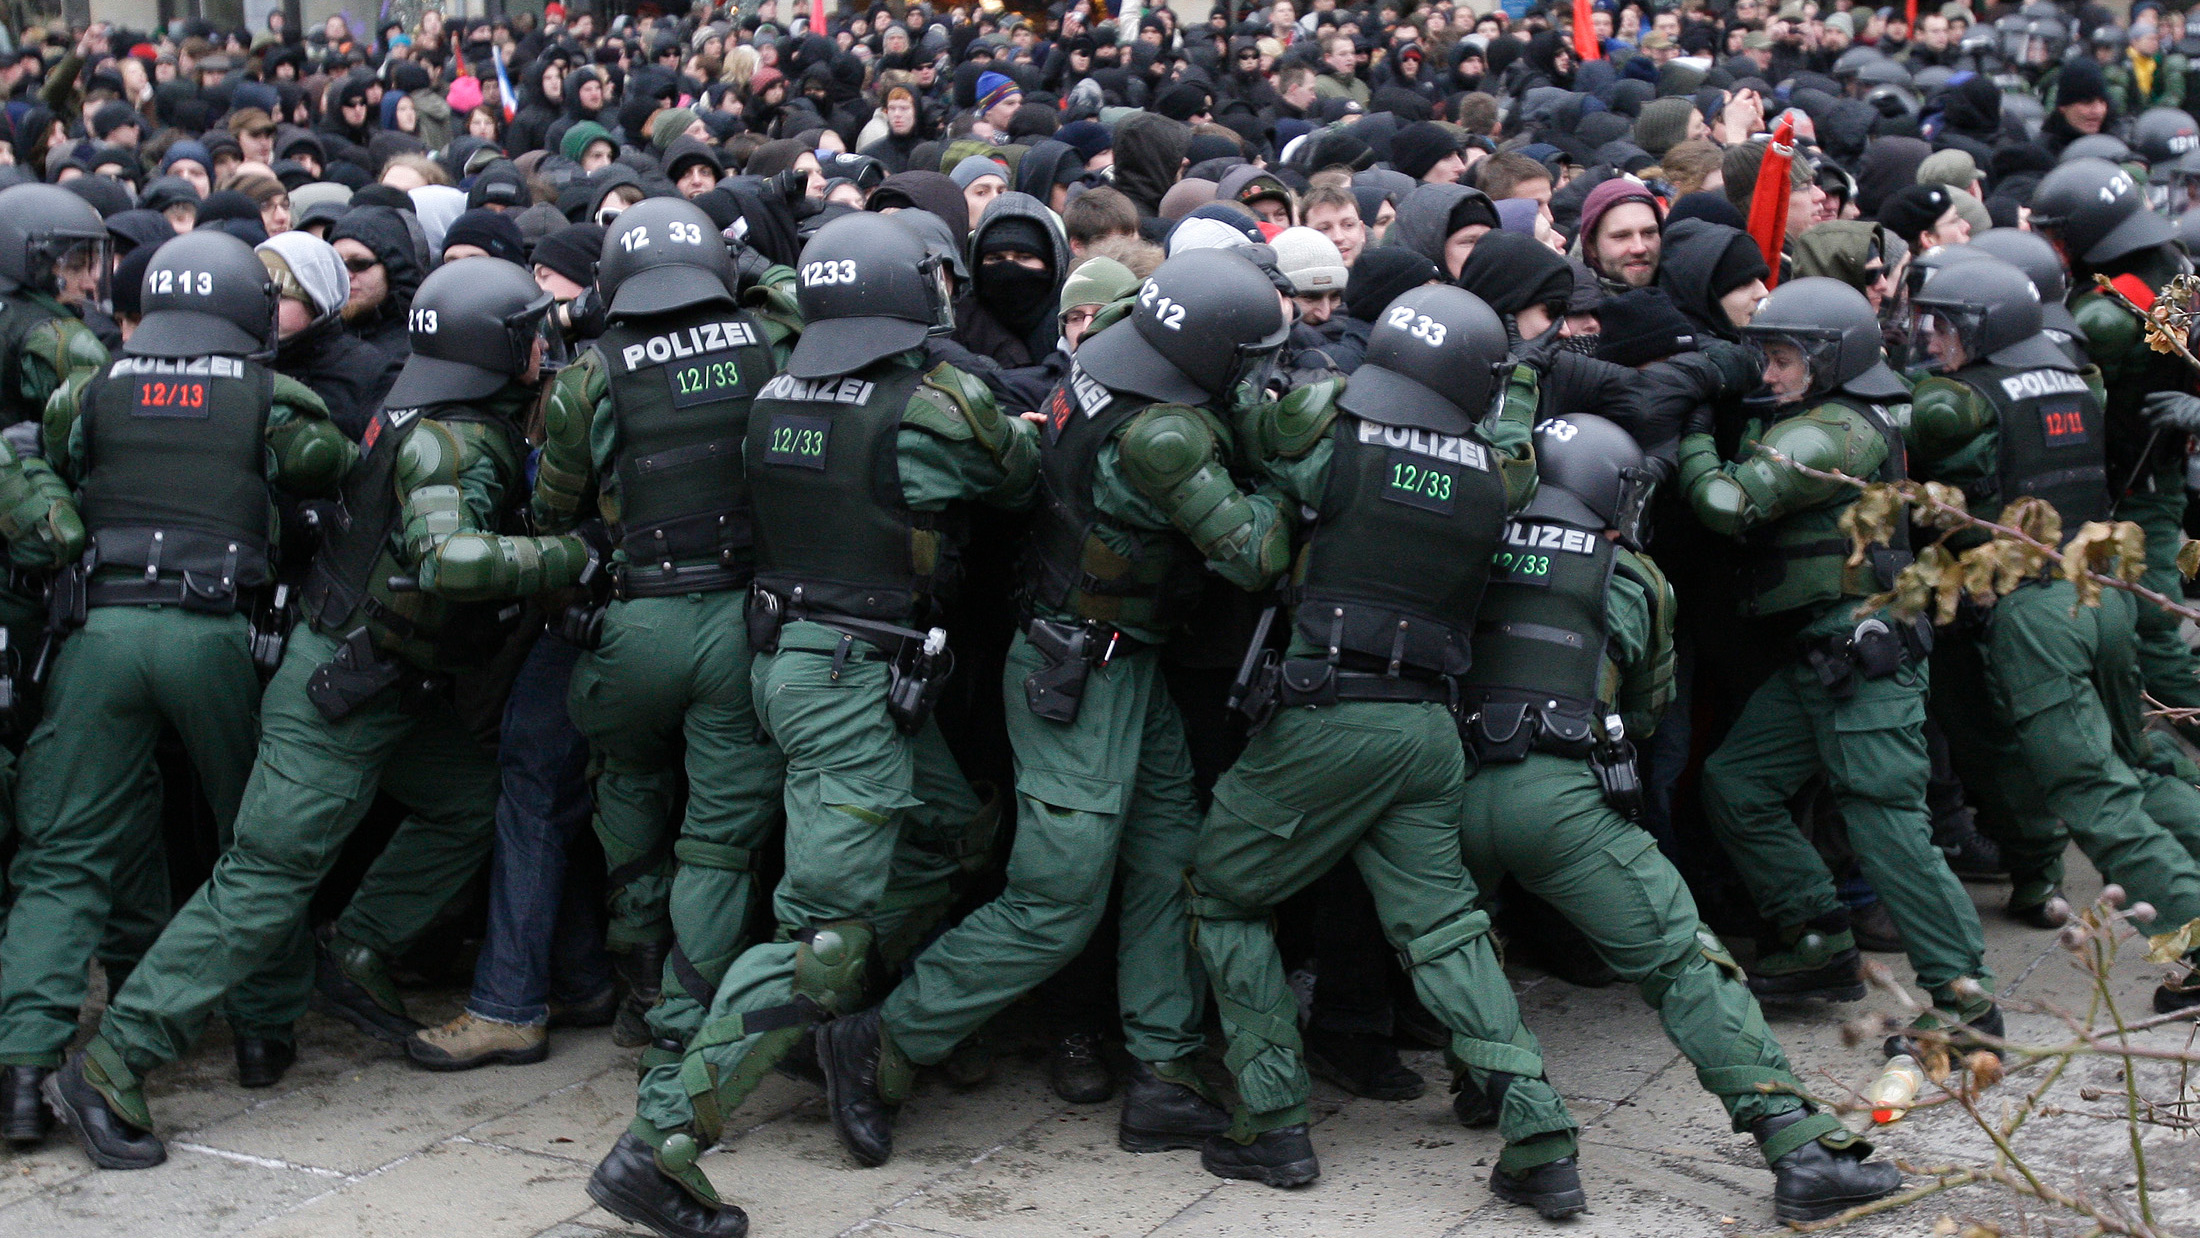 The photo shows a line of uniformed riot gear officers pushing hard against a scrum of protesters.